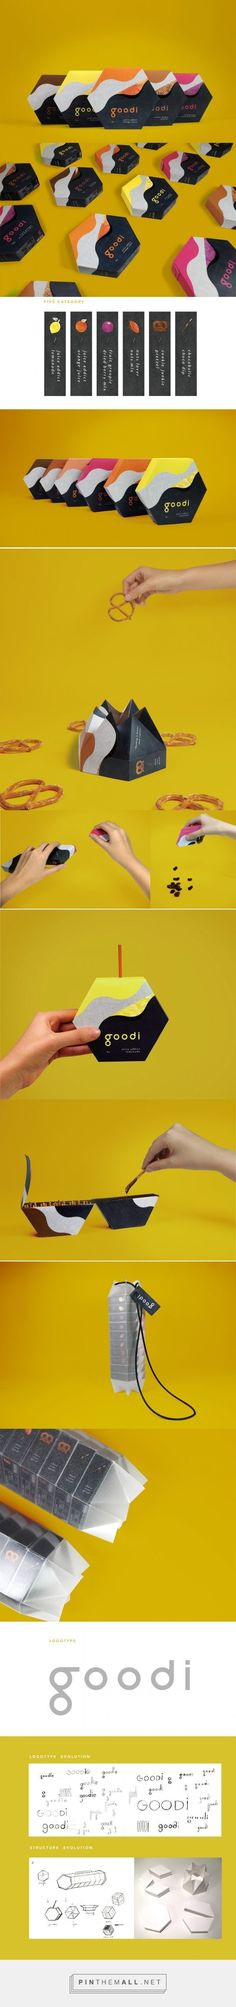 Goodi (Student Project) - Packaging of the World - Creative Package Design Gallery - http://www.packagingoftheworld.com/2017/02/goodi-student-project.html